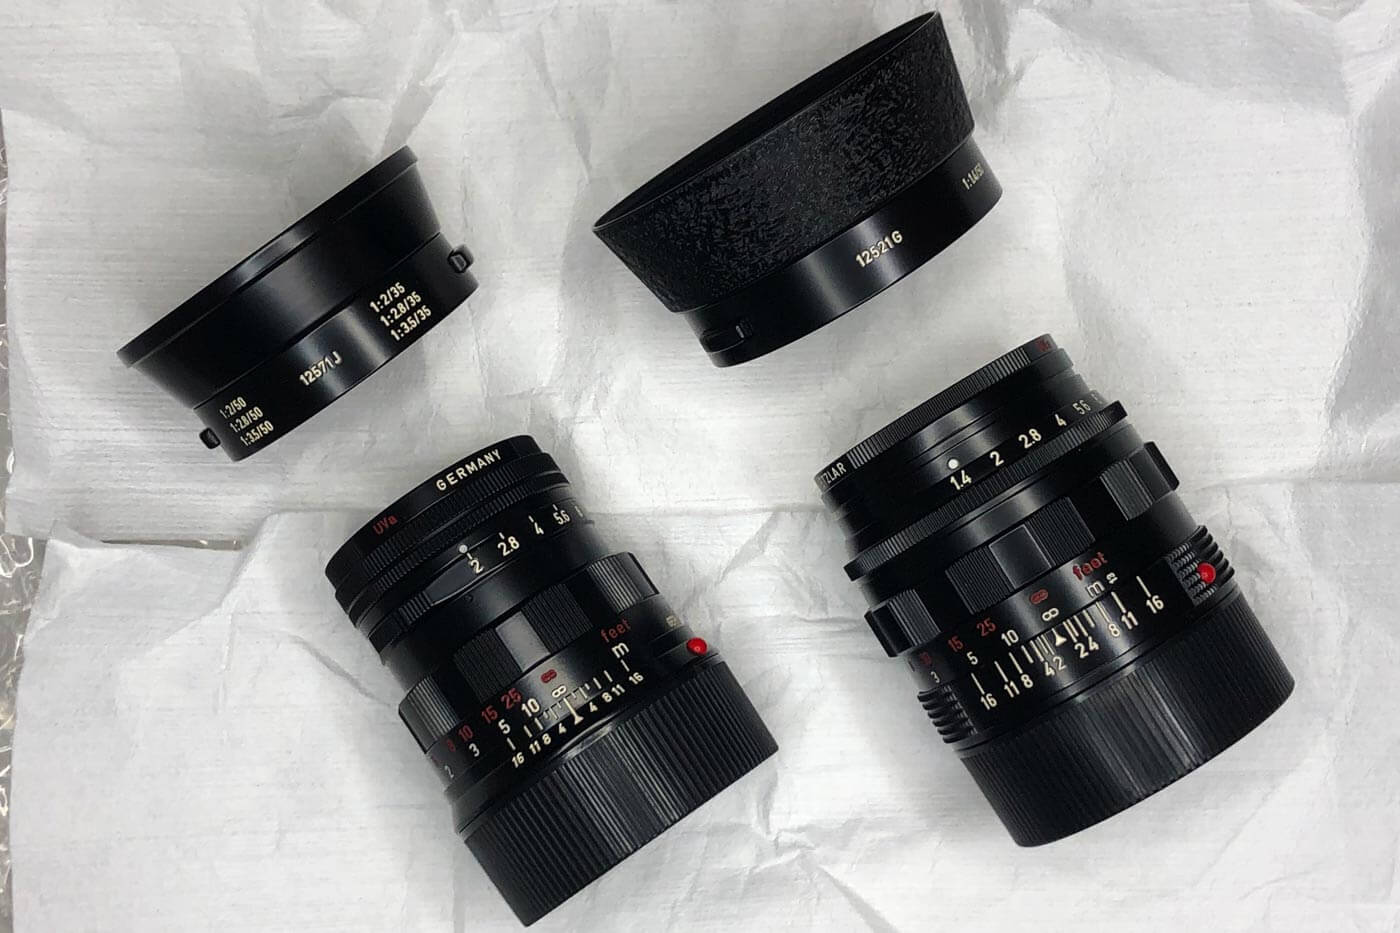 guide-repaint-repainting-leica-camera-lens-lenses-japan-kanto-cameras-black-brass-quality-best-option-experience-9-months-summicron-rigid-summilux-v2-50mm-f2-hood